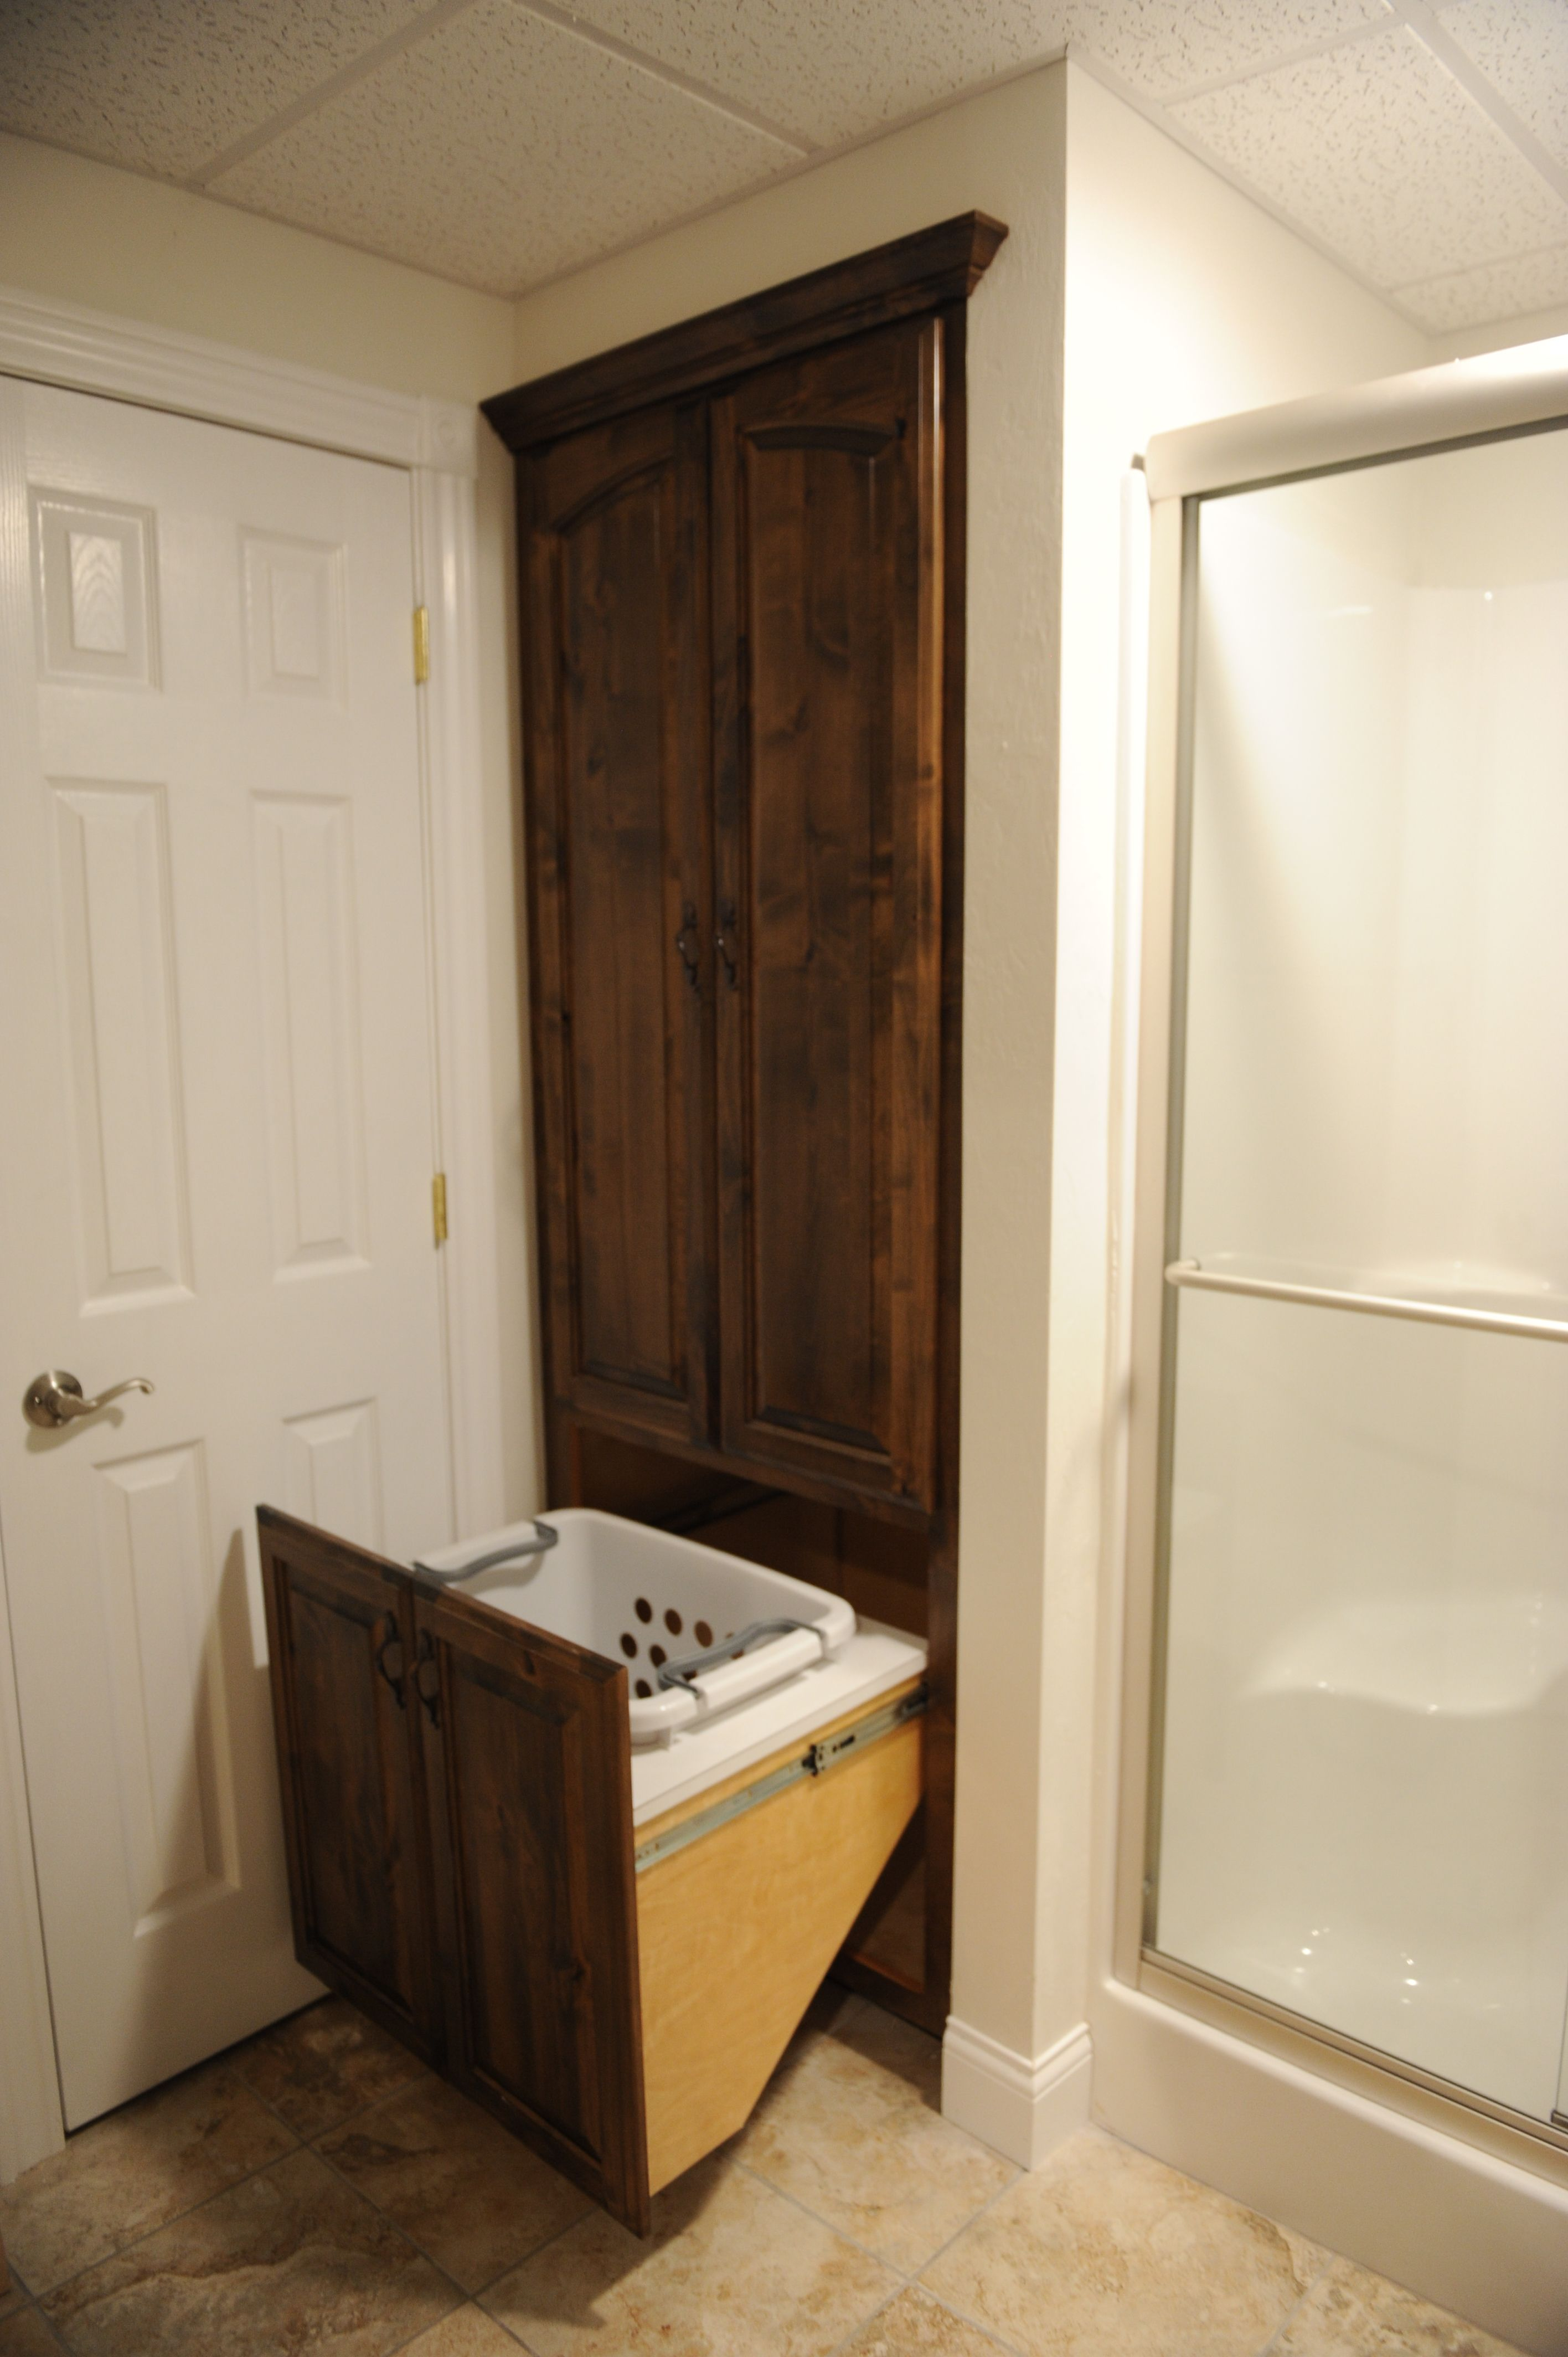 Roll out hamper storage in the bath room. lustigcabinets.com ...